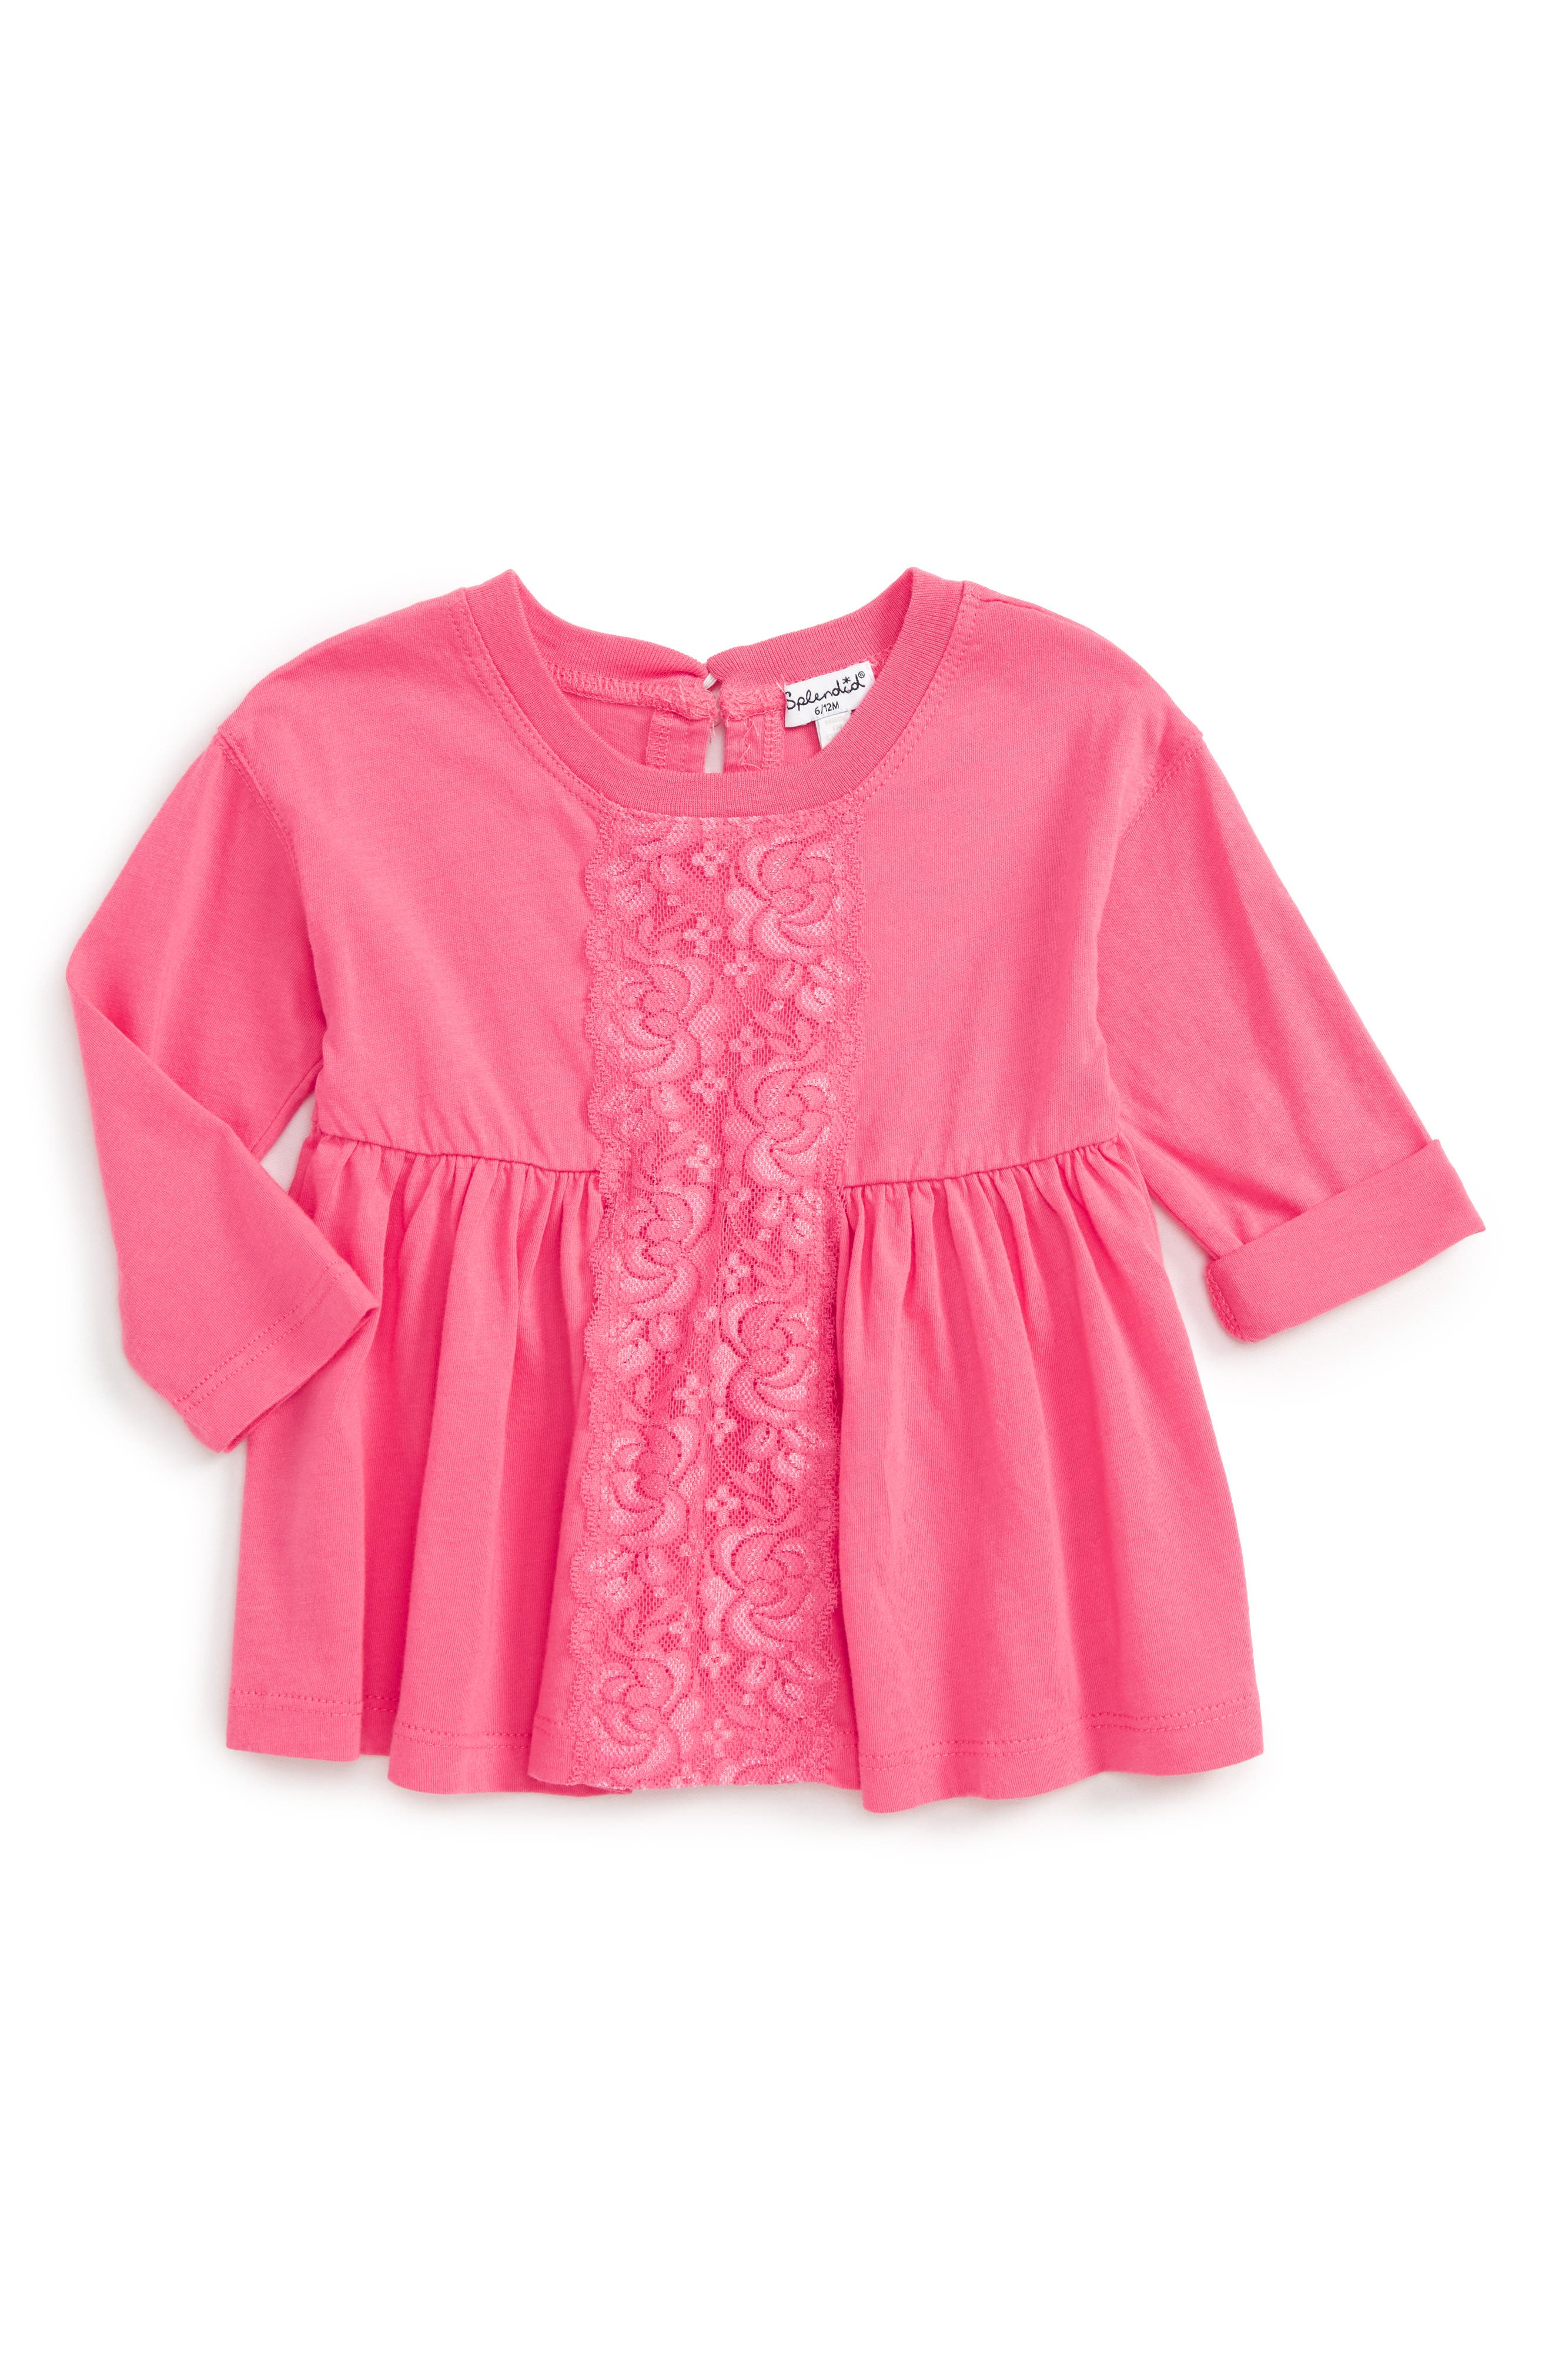 Splendid Lace Panel Top (Baby Girls)